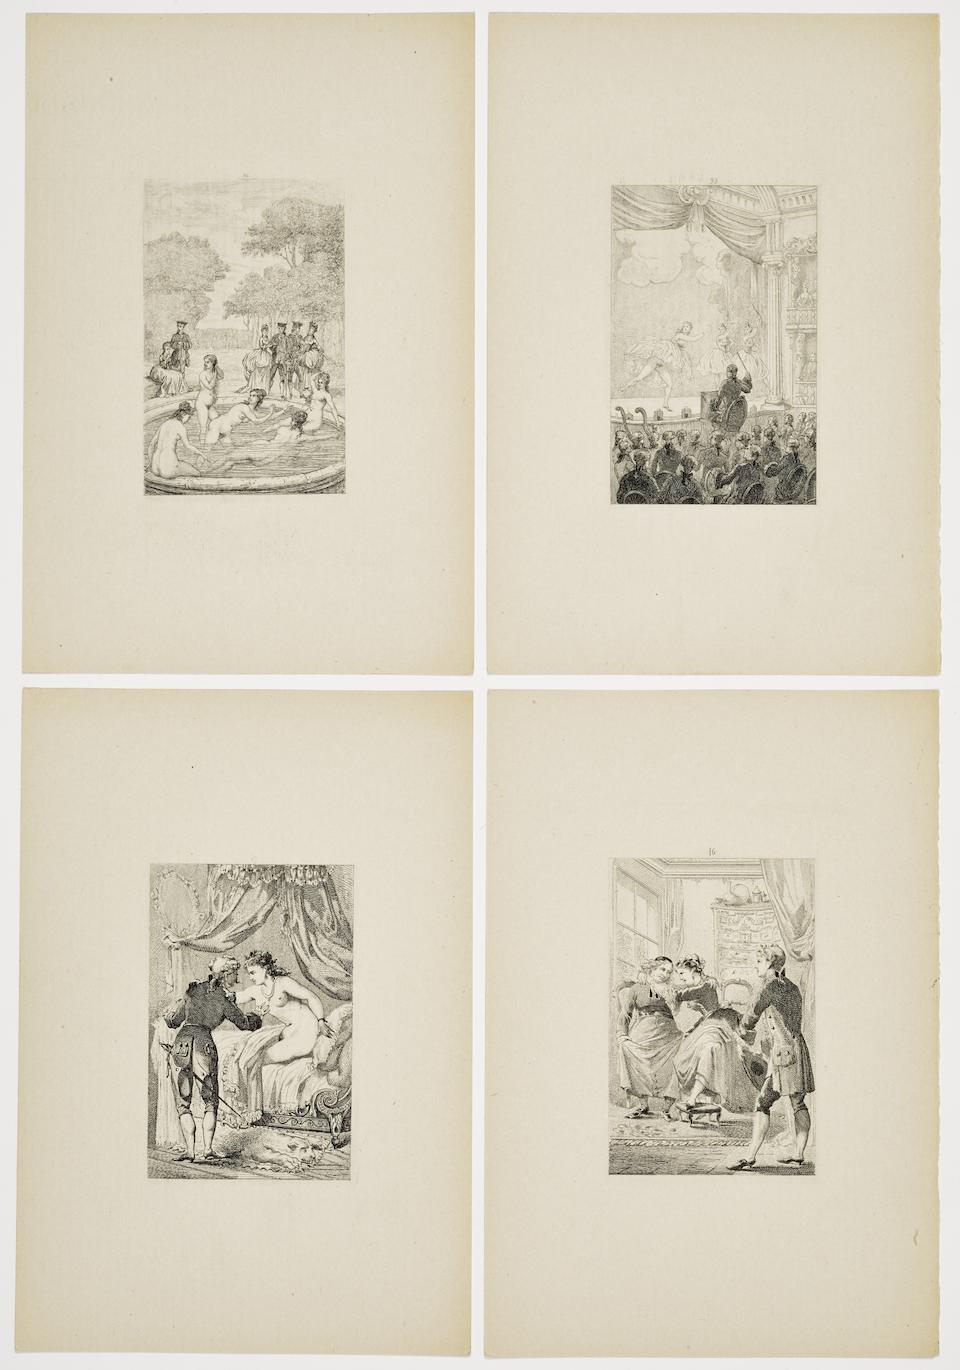 EROTICA. 3 albums of French erotic plates and drawings, as follows: